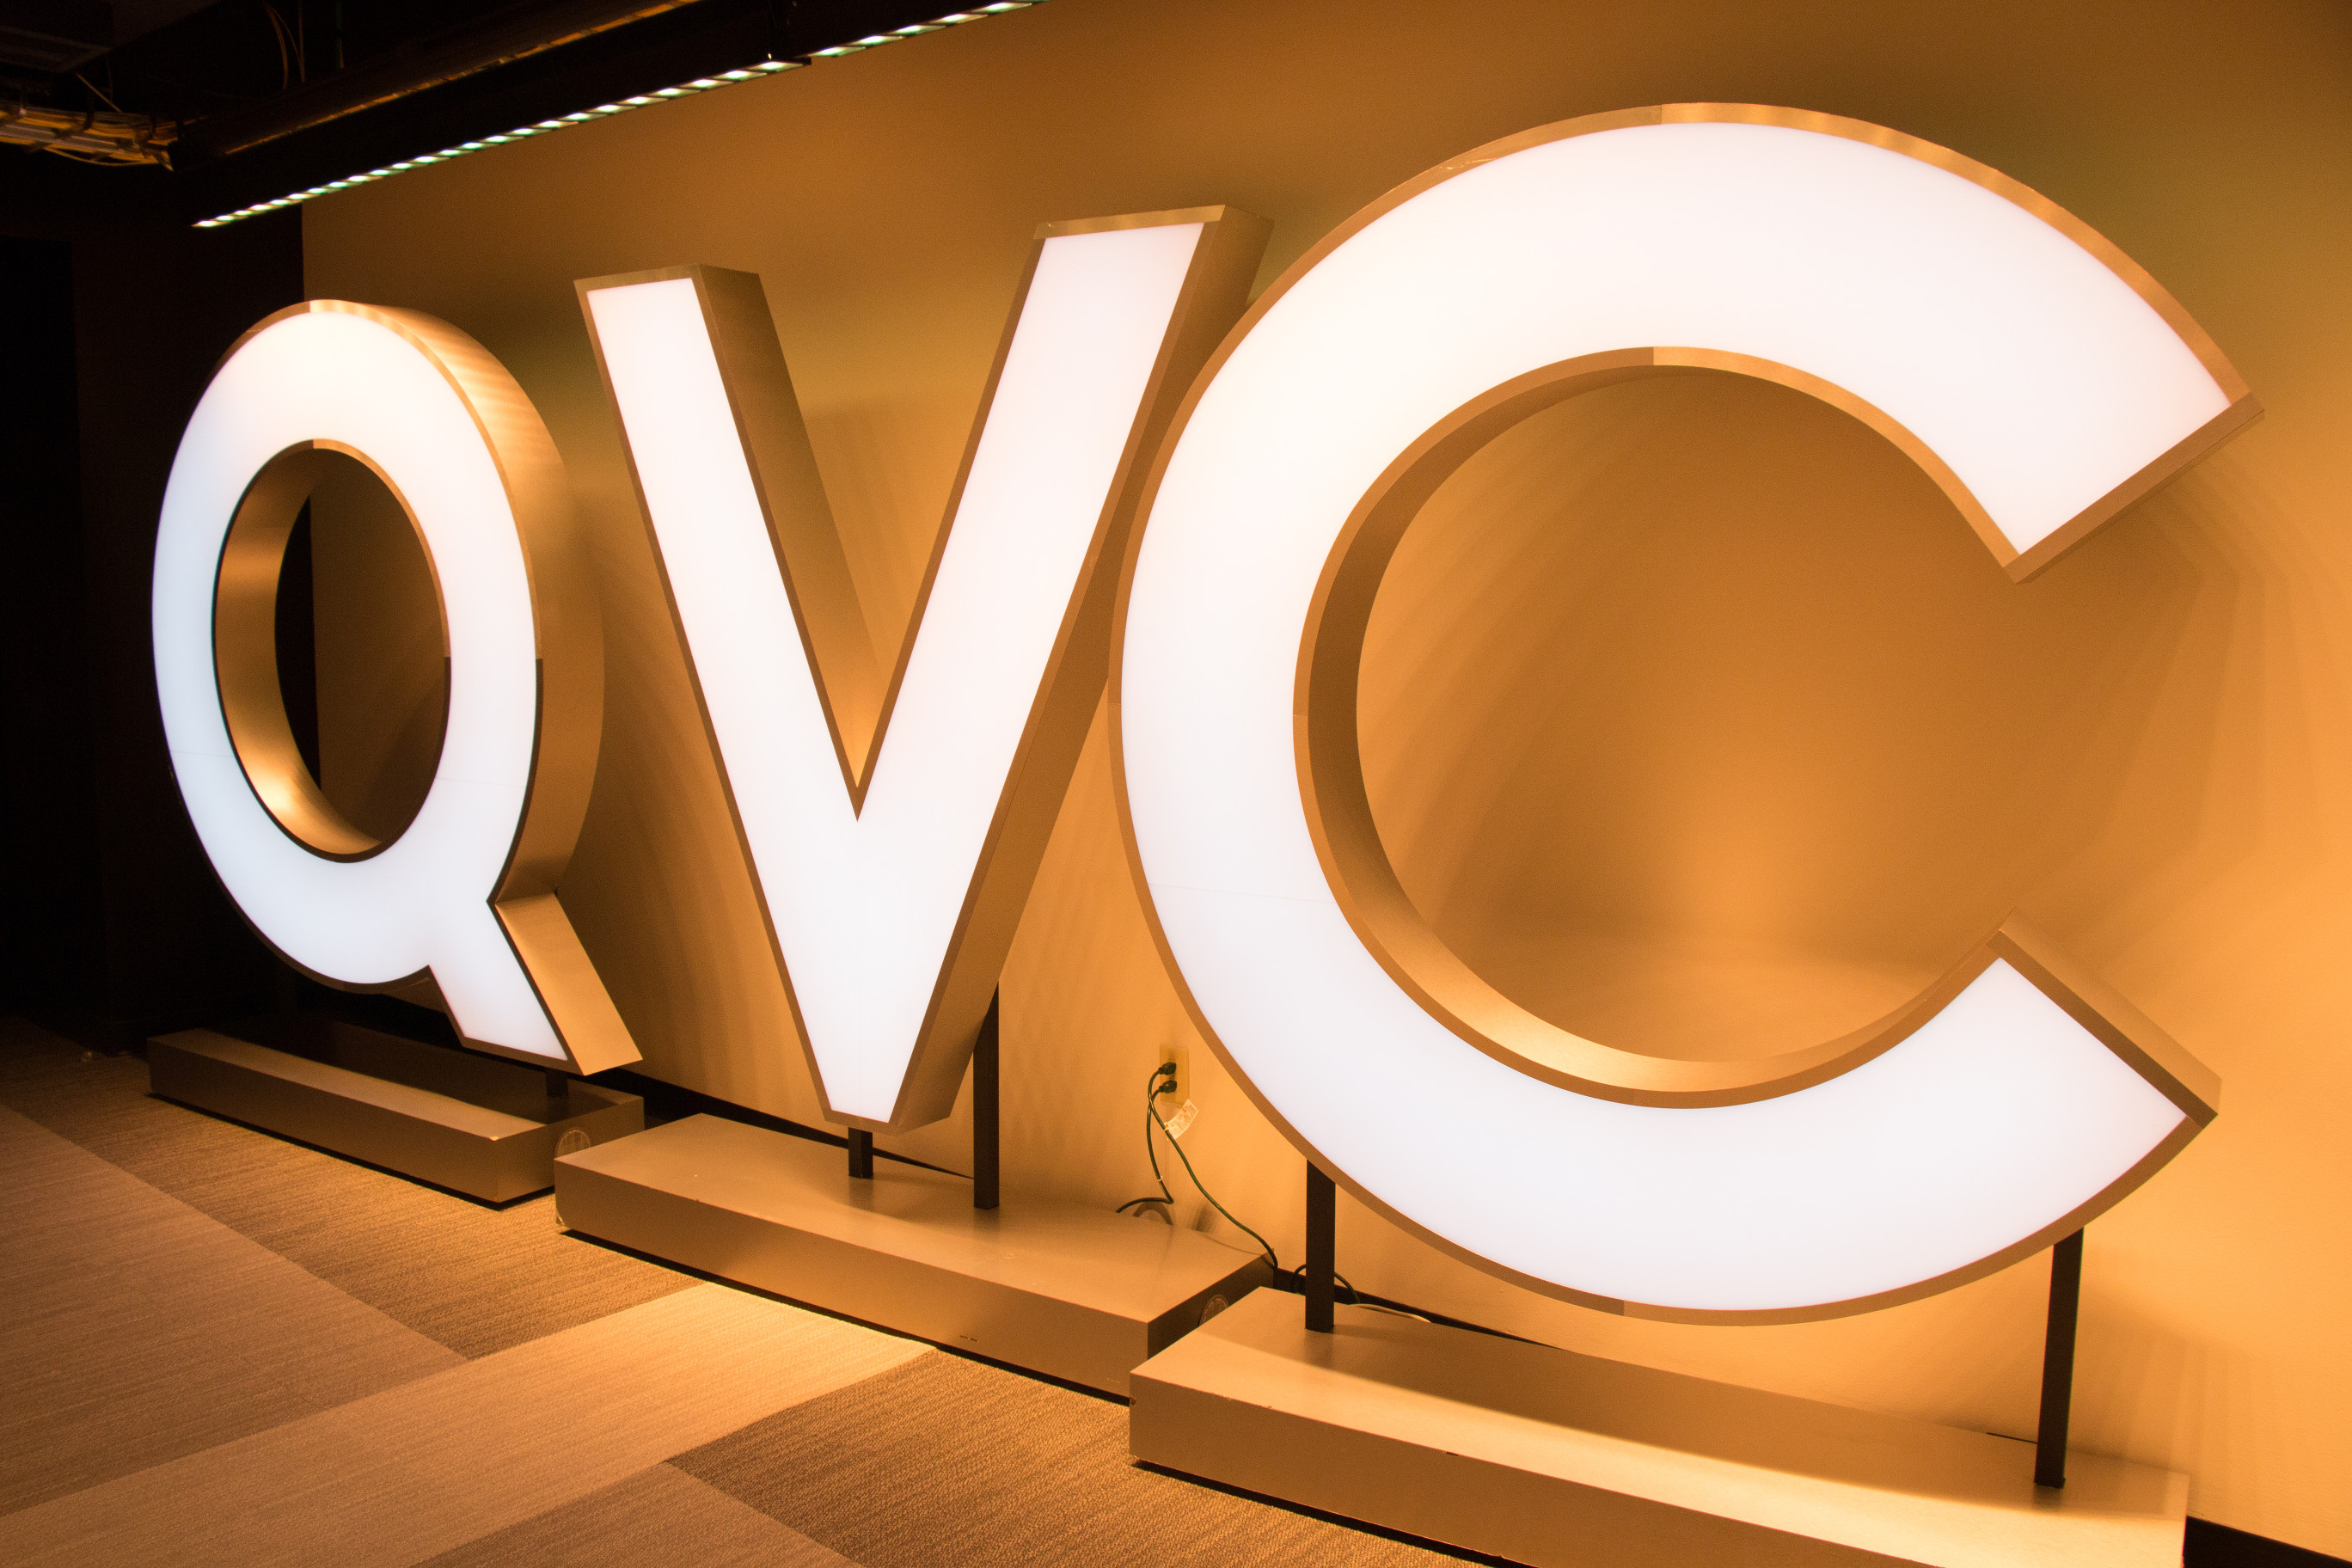 Celebrating it's 30th anniversary, QVC played host to the Women in Business event earlier this week.